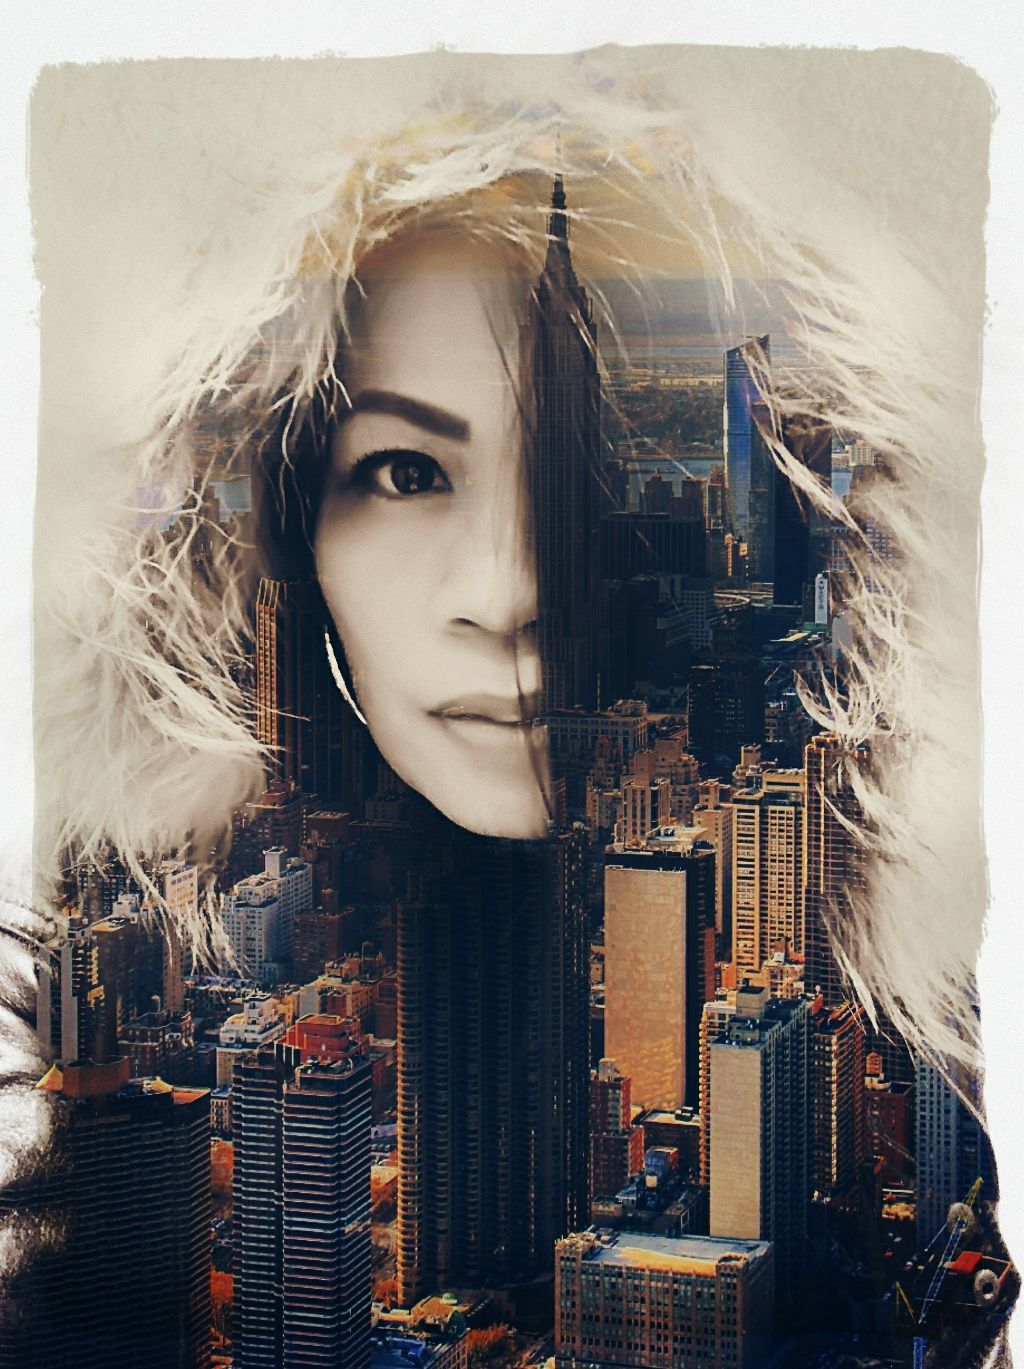 Great day for everyone😁 Image from @pixbyyolz and @agentsmith0047   #doubleexposure #photoblending #madewithpicsart #drawtool #buildings #nyc #architecture #mask #border #editstepbystep #myedit #cineramaeffect